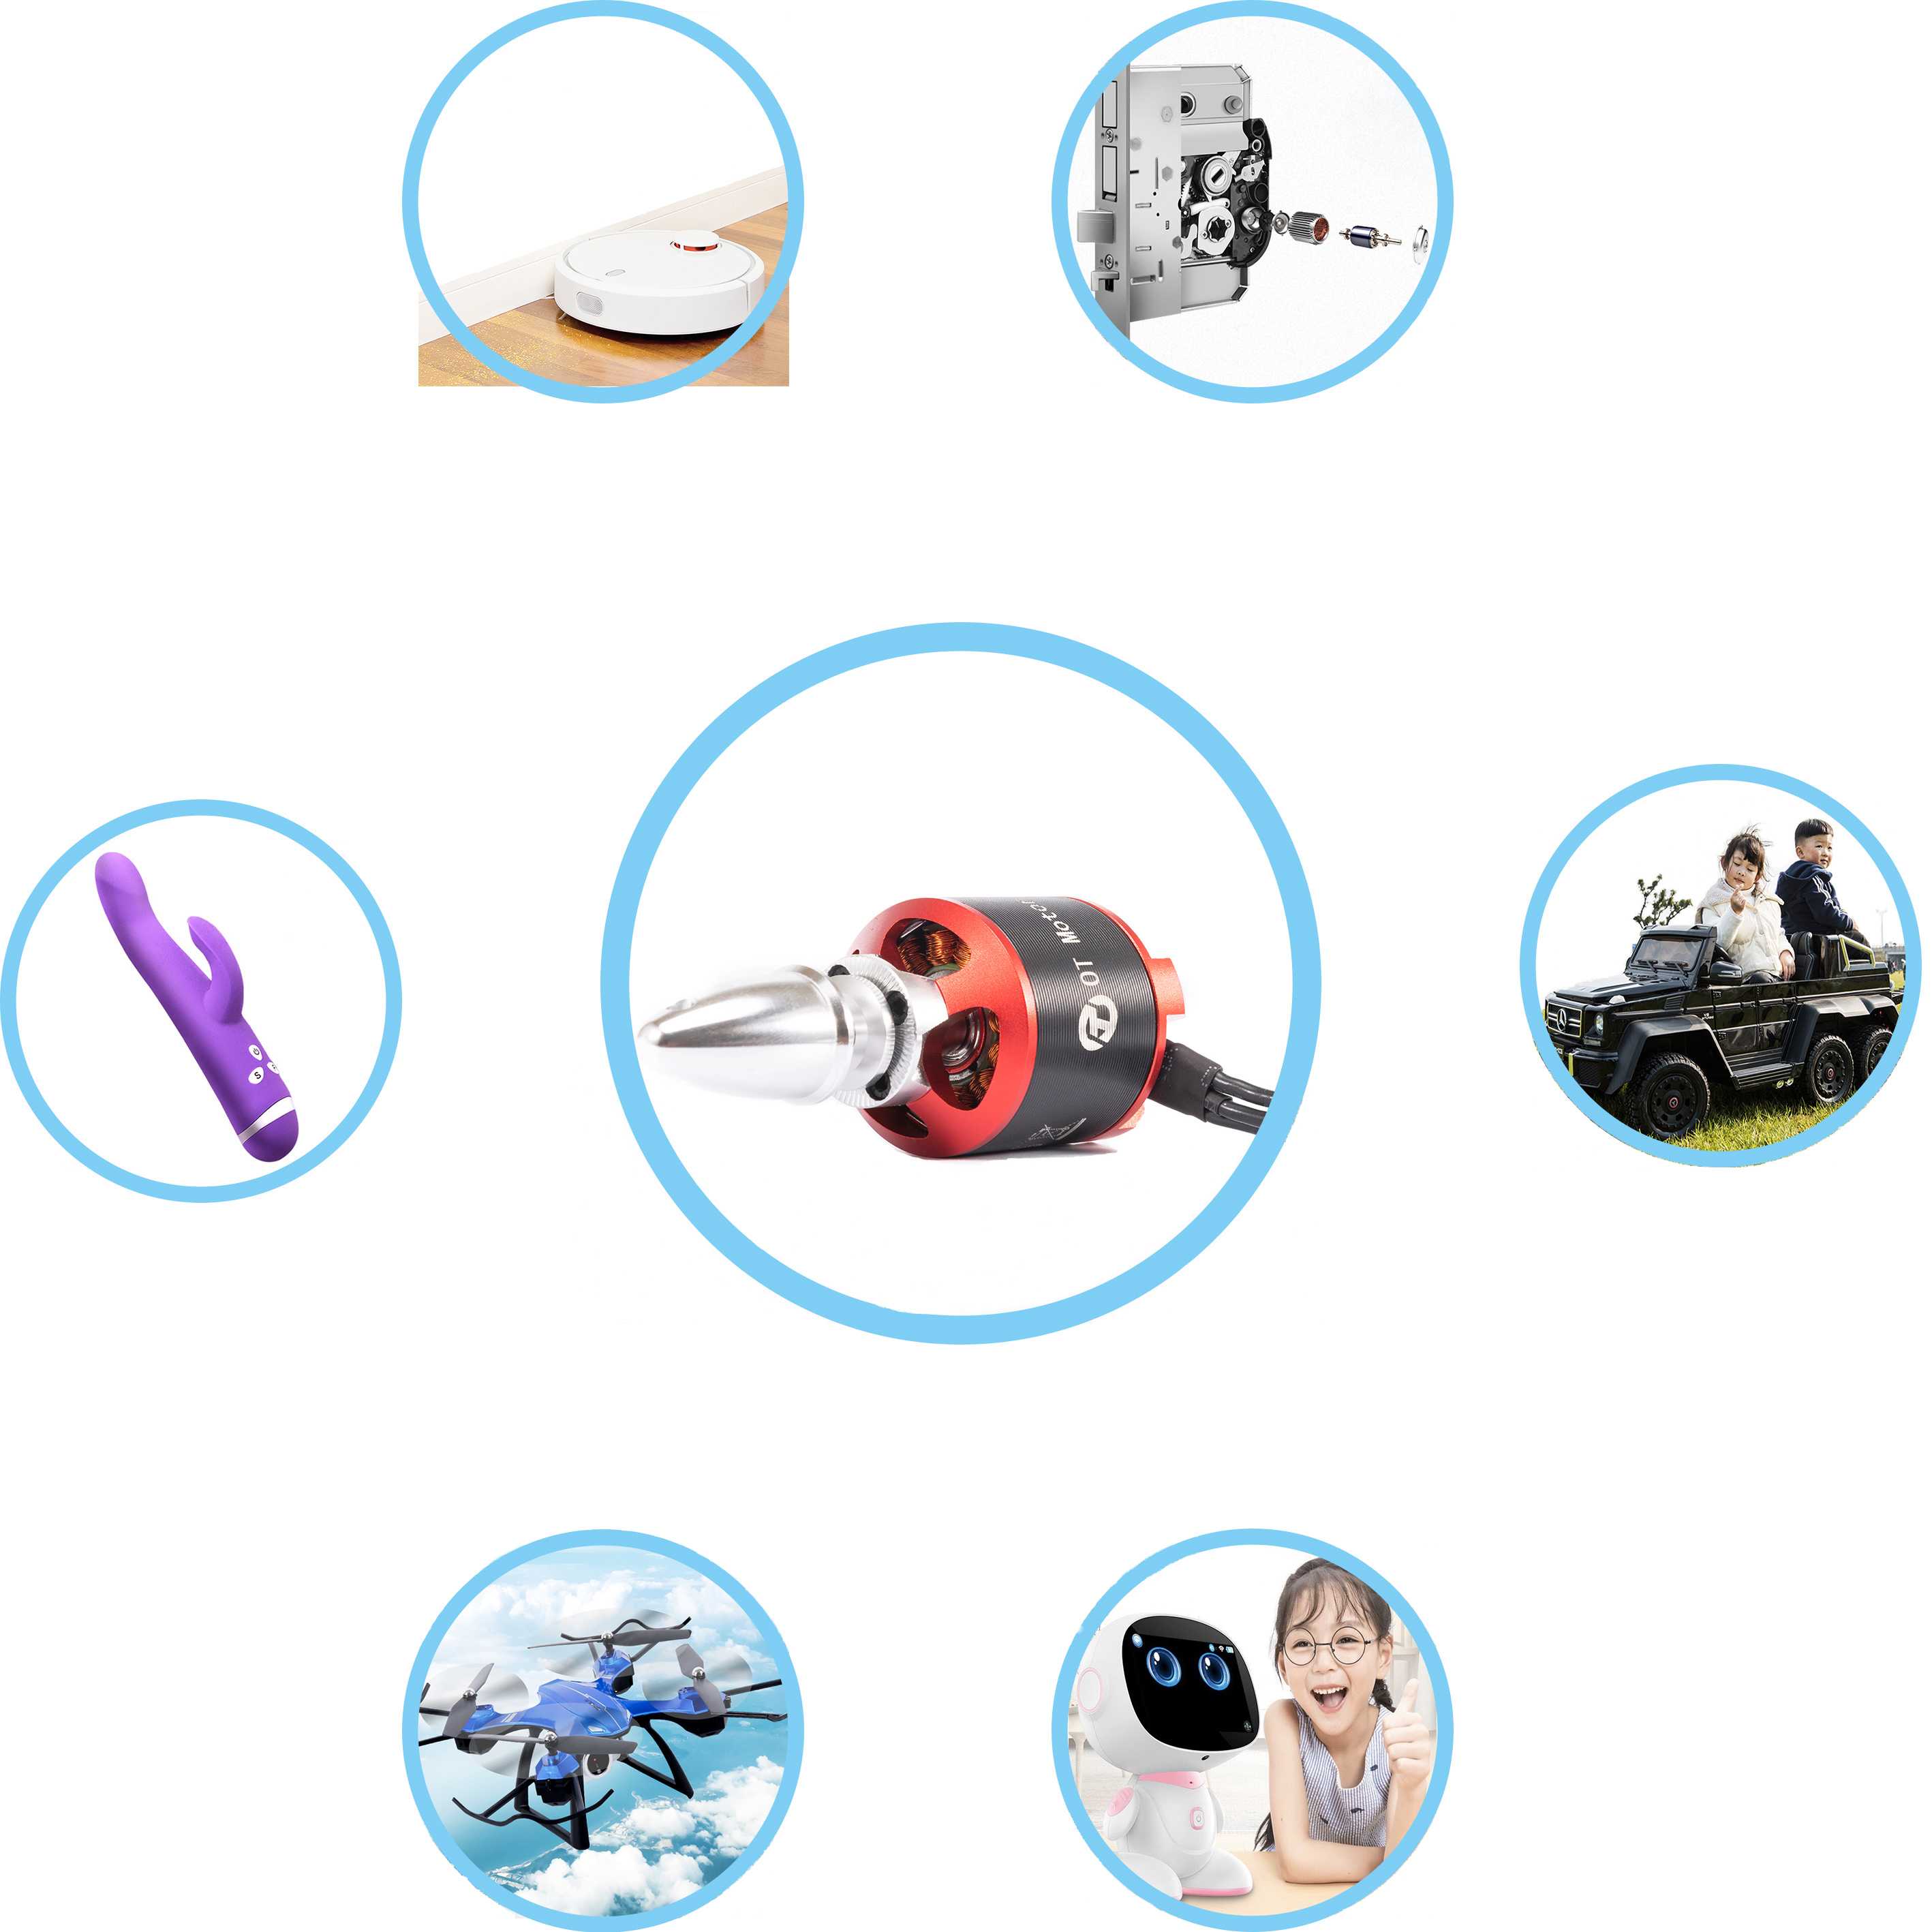 12mm 1.5V 3V high speed brush dc gear vibration motor for humidifier mini USB fan sex toy electric car motors